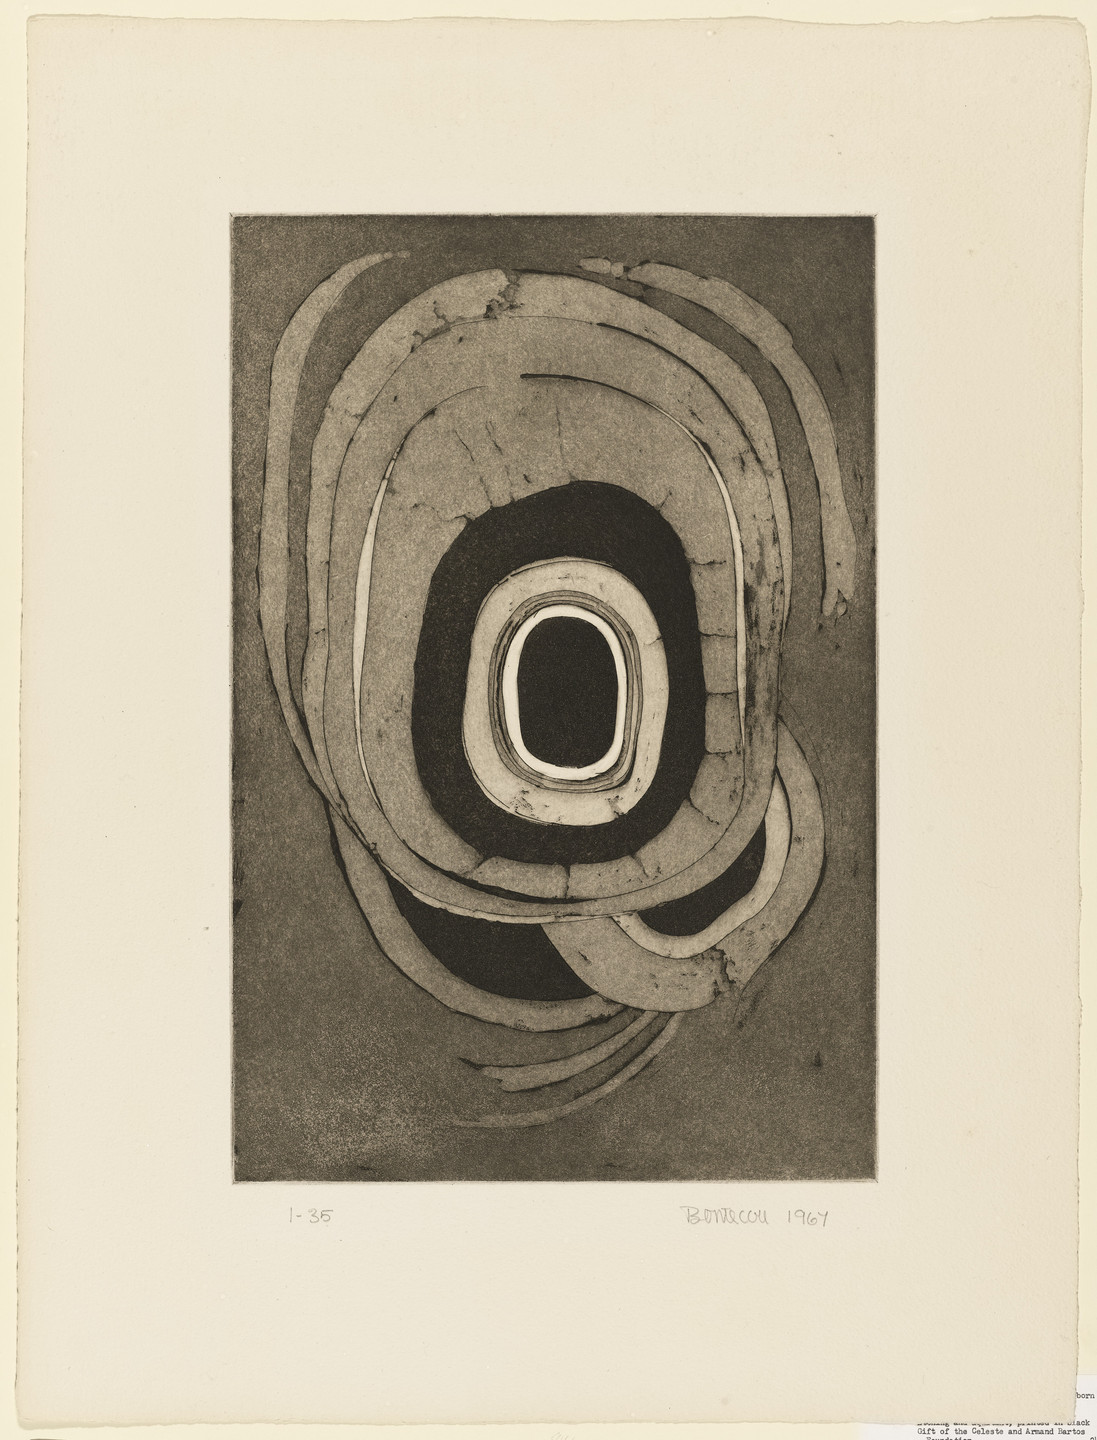 Lee Bontecou. Etching One. 1967